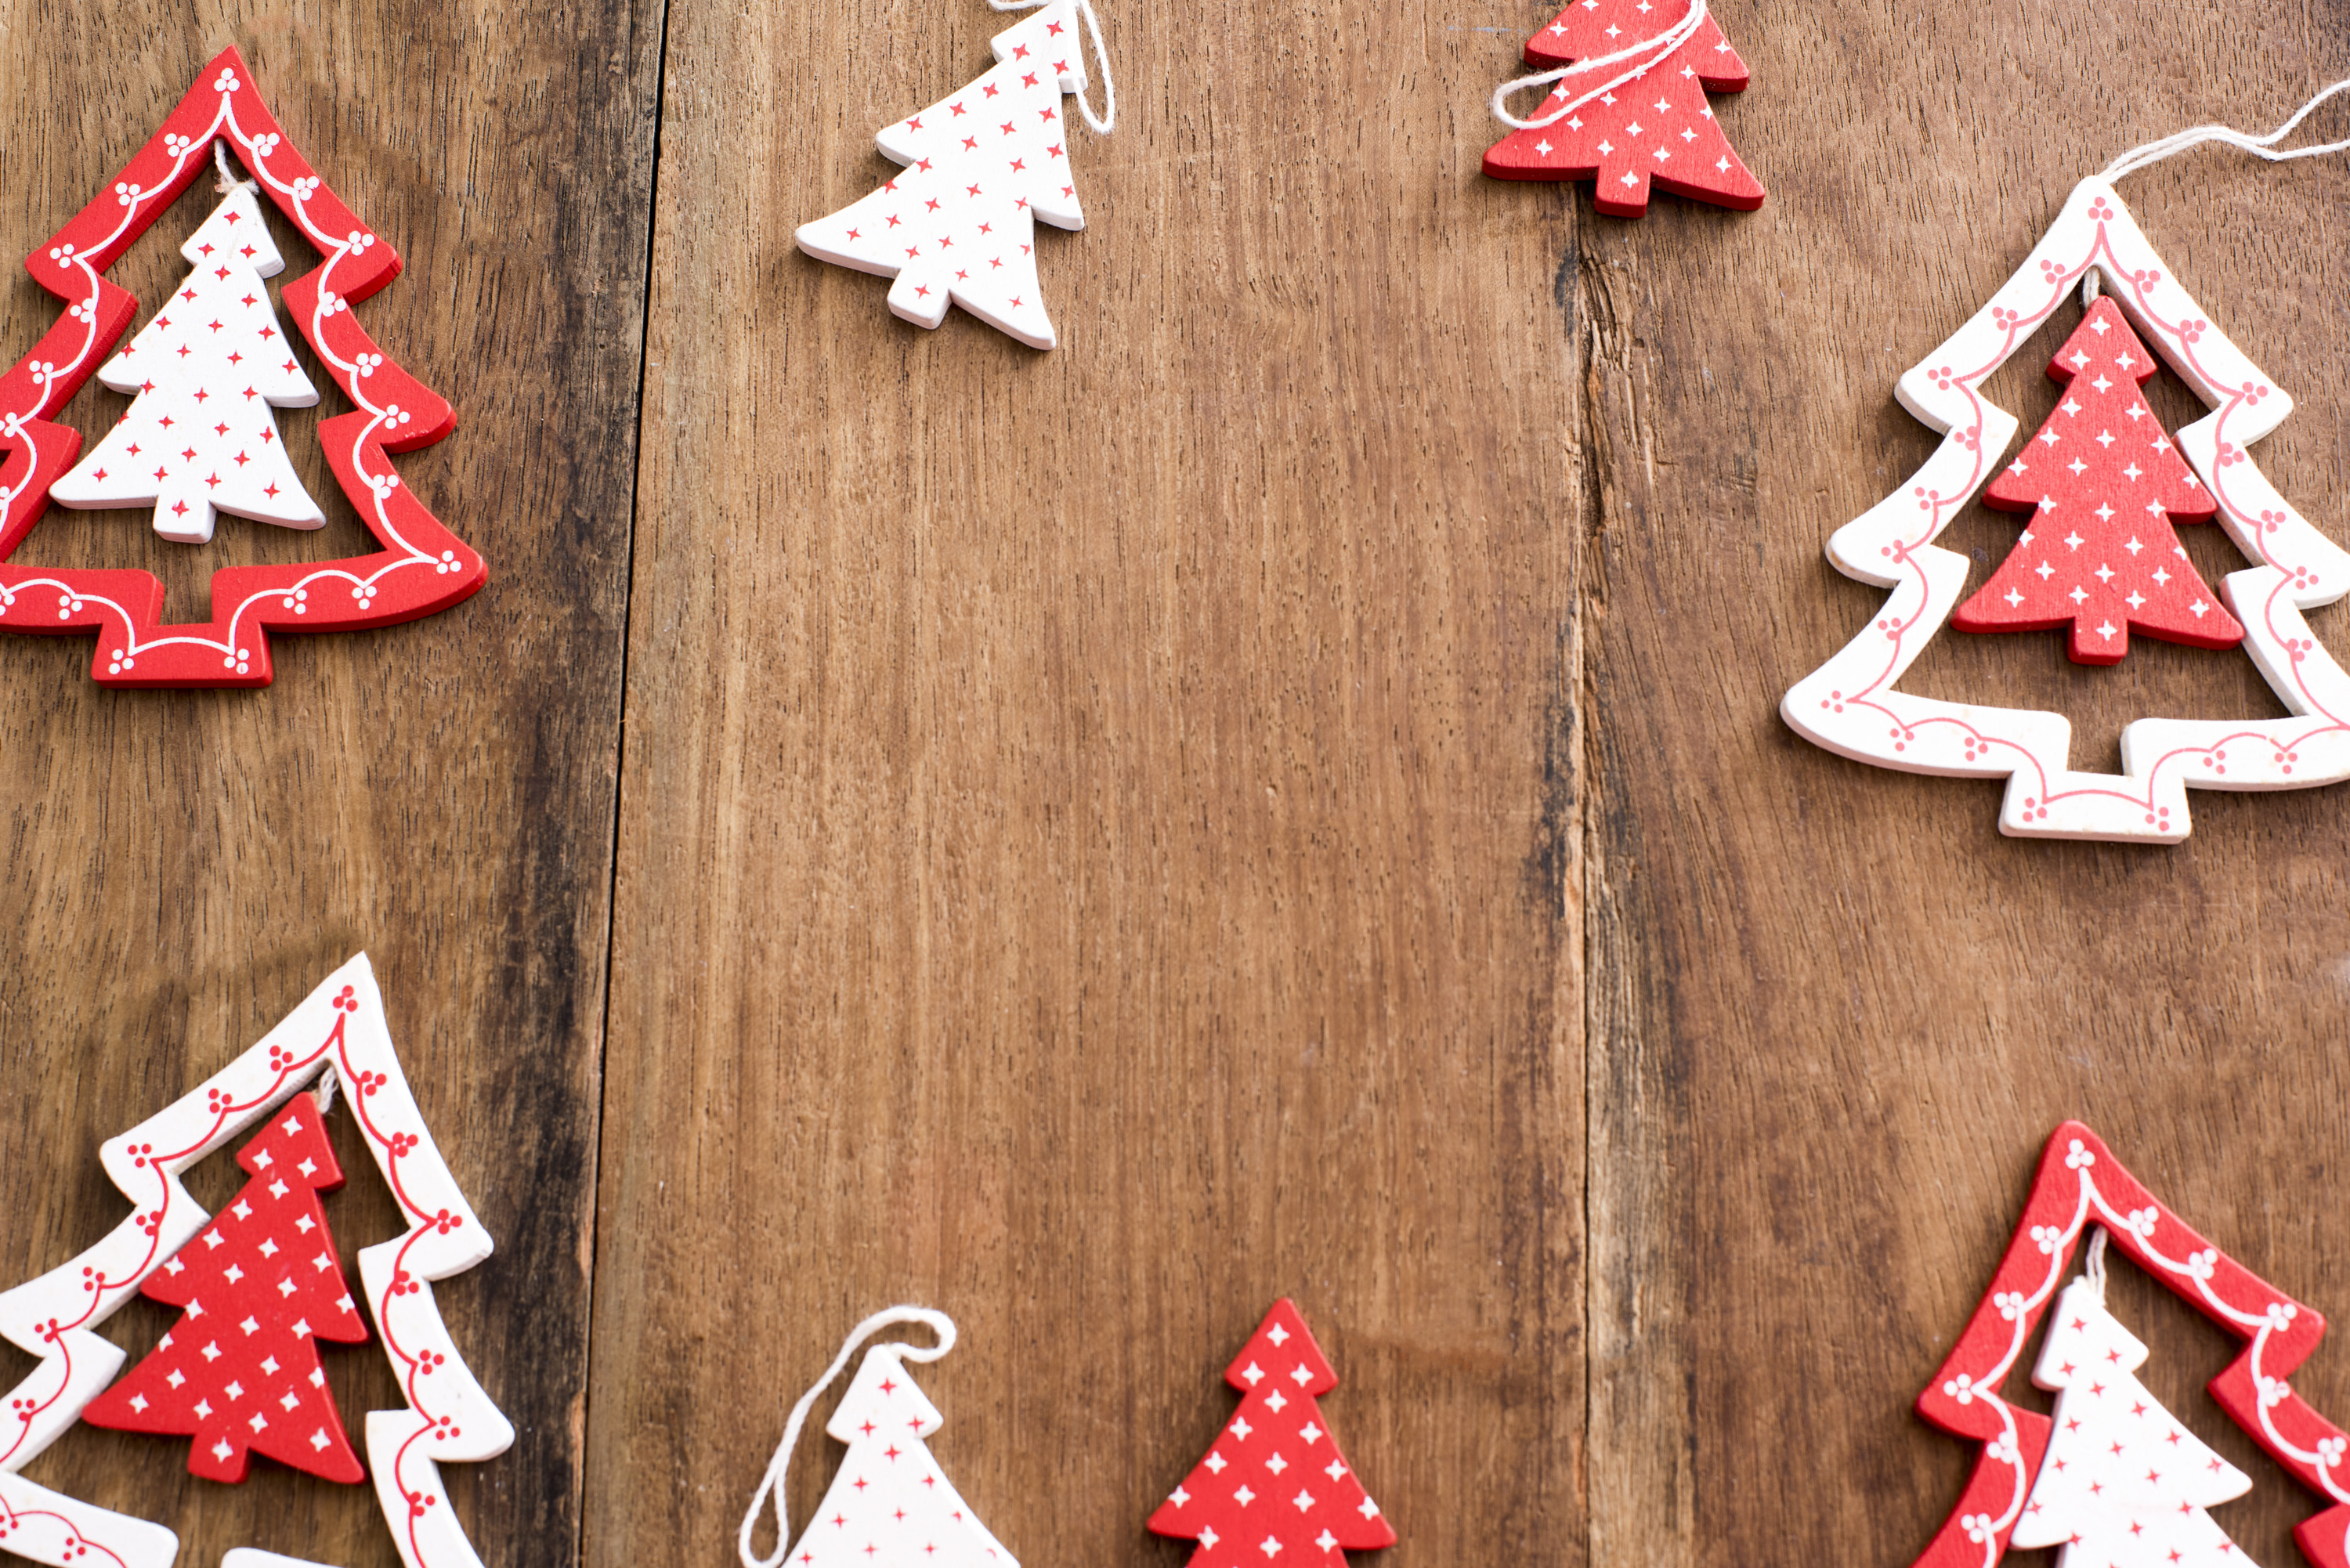 Wood Christmas Decorations.Free Stock Photo 13165 Wooden Christmas Tree Decoration